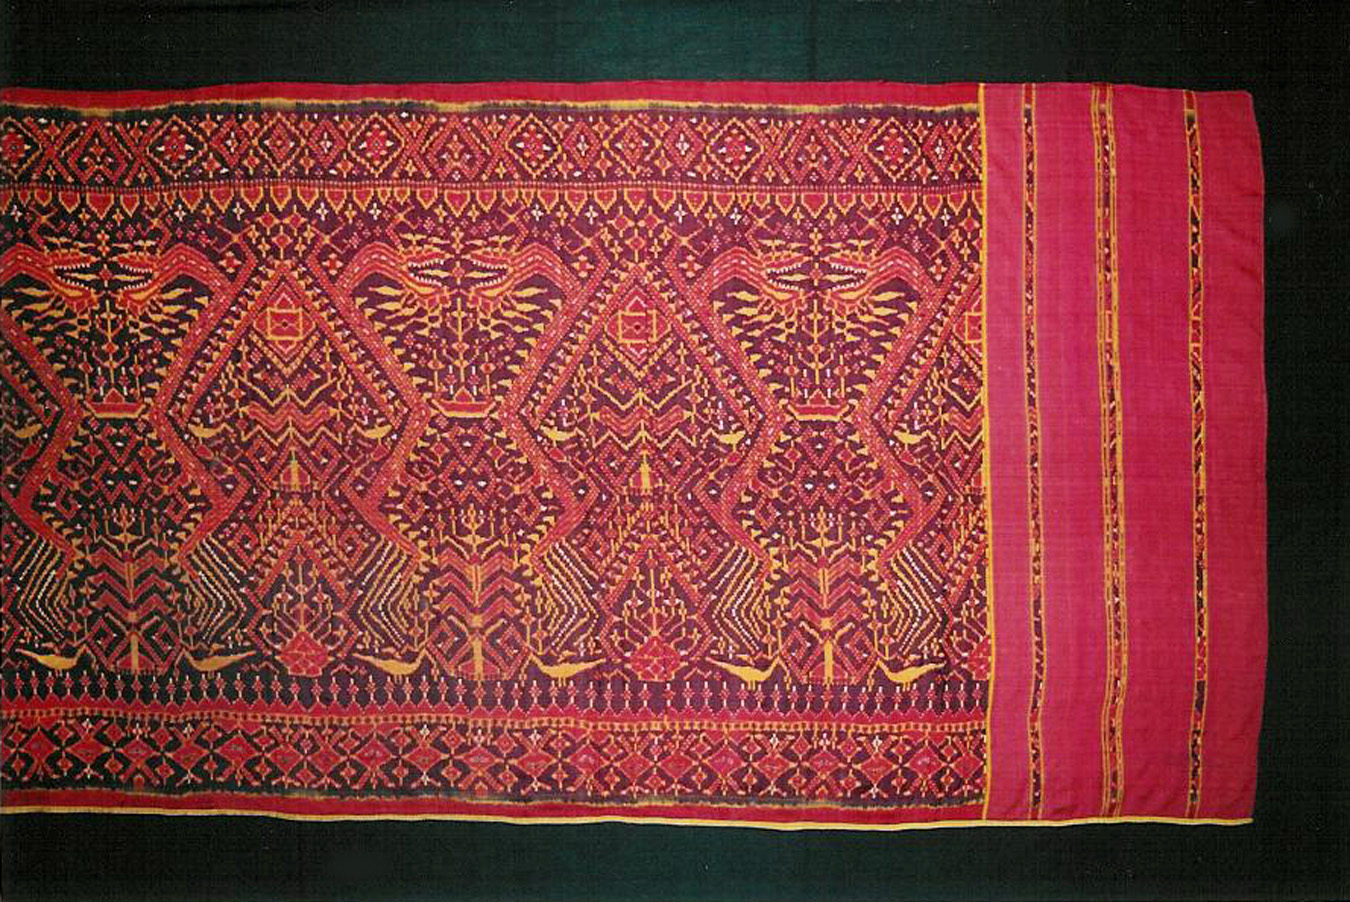 Silk ikat ship cloth, Cambodia, 19th century.